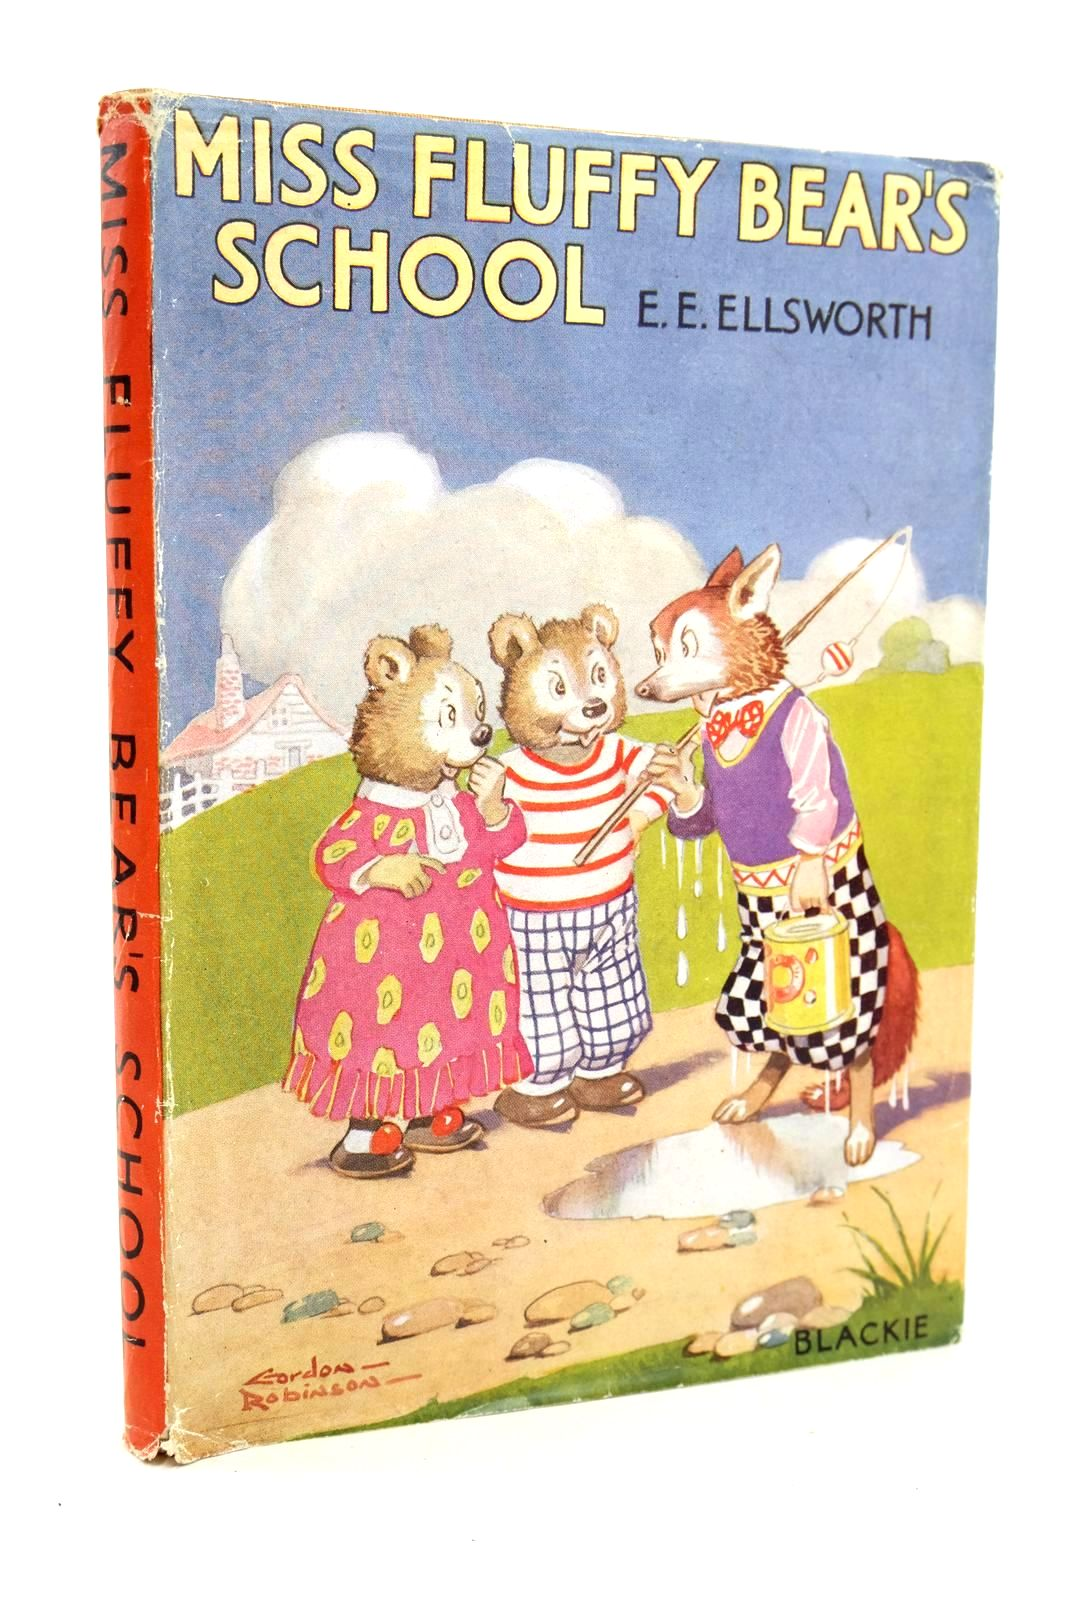 Photo of MISS FLUFFY BEAR'S SCHOOL written by Ellsworth, E.E. published by Blackie & Son Ltd. (STOCK CODE: 1319035)  for sale by Stella & Rose's Books